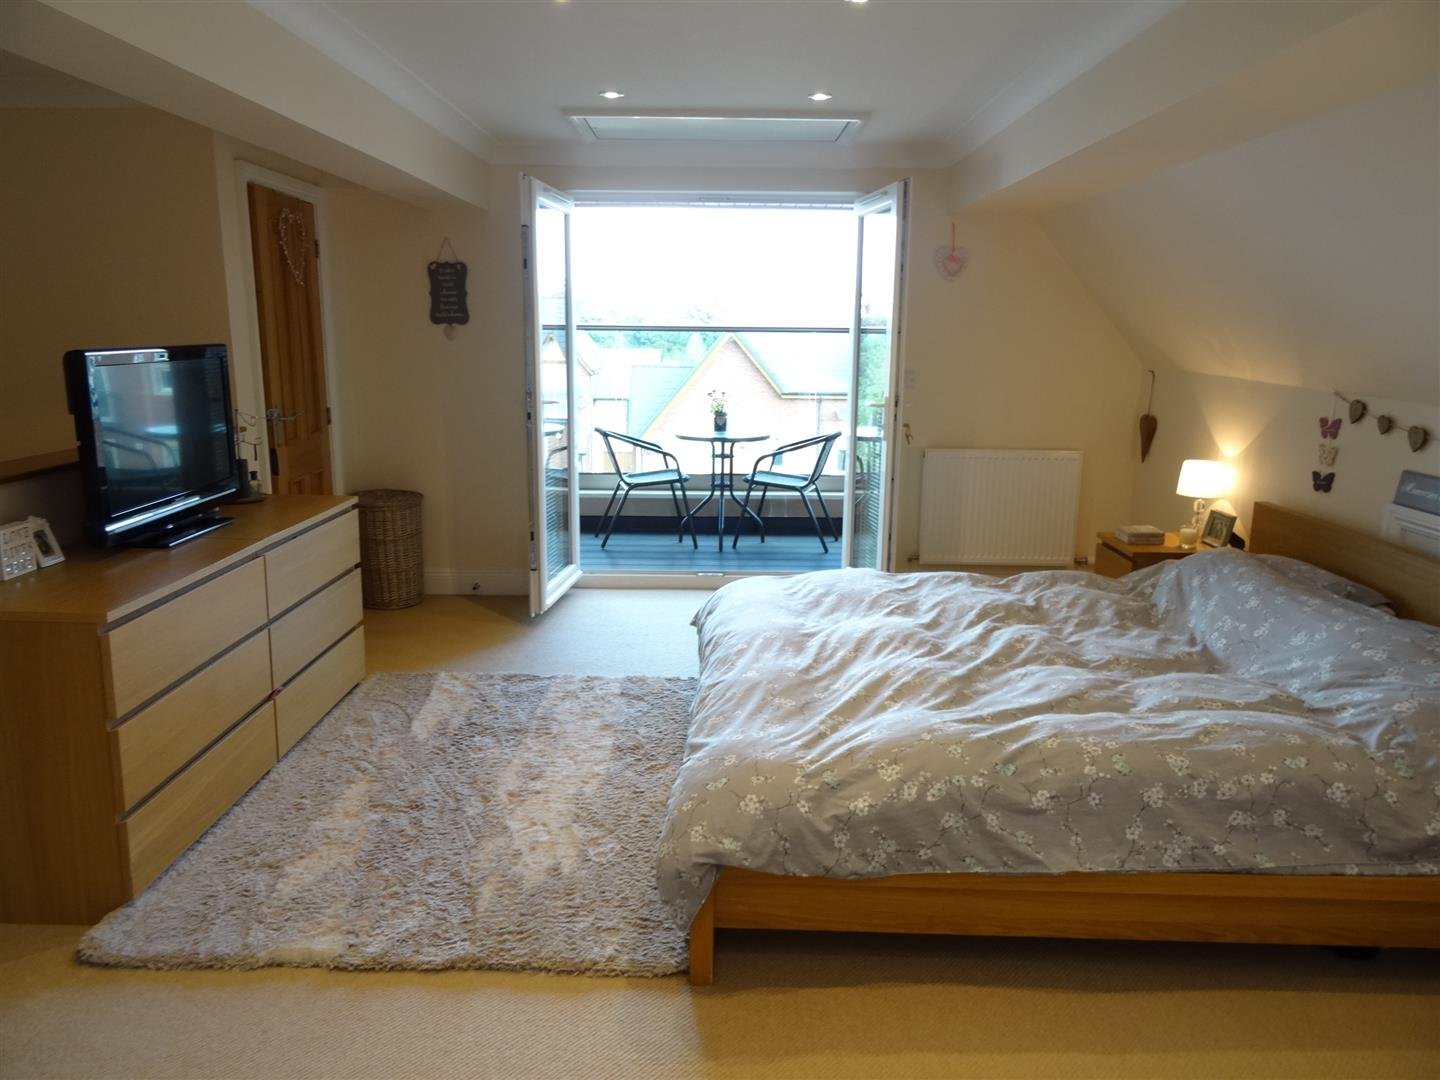 4 Bedrooms House For Sale 15 Johnston Drive Carlisle